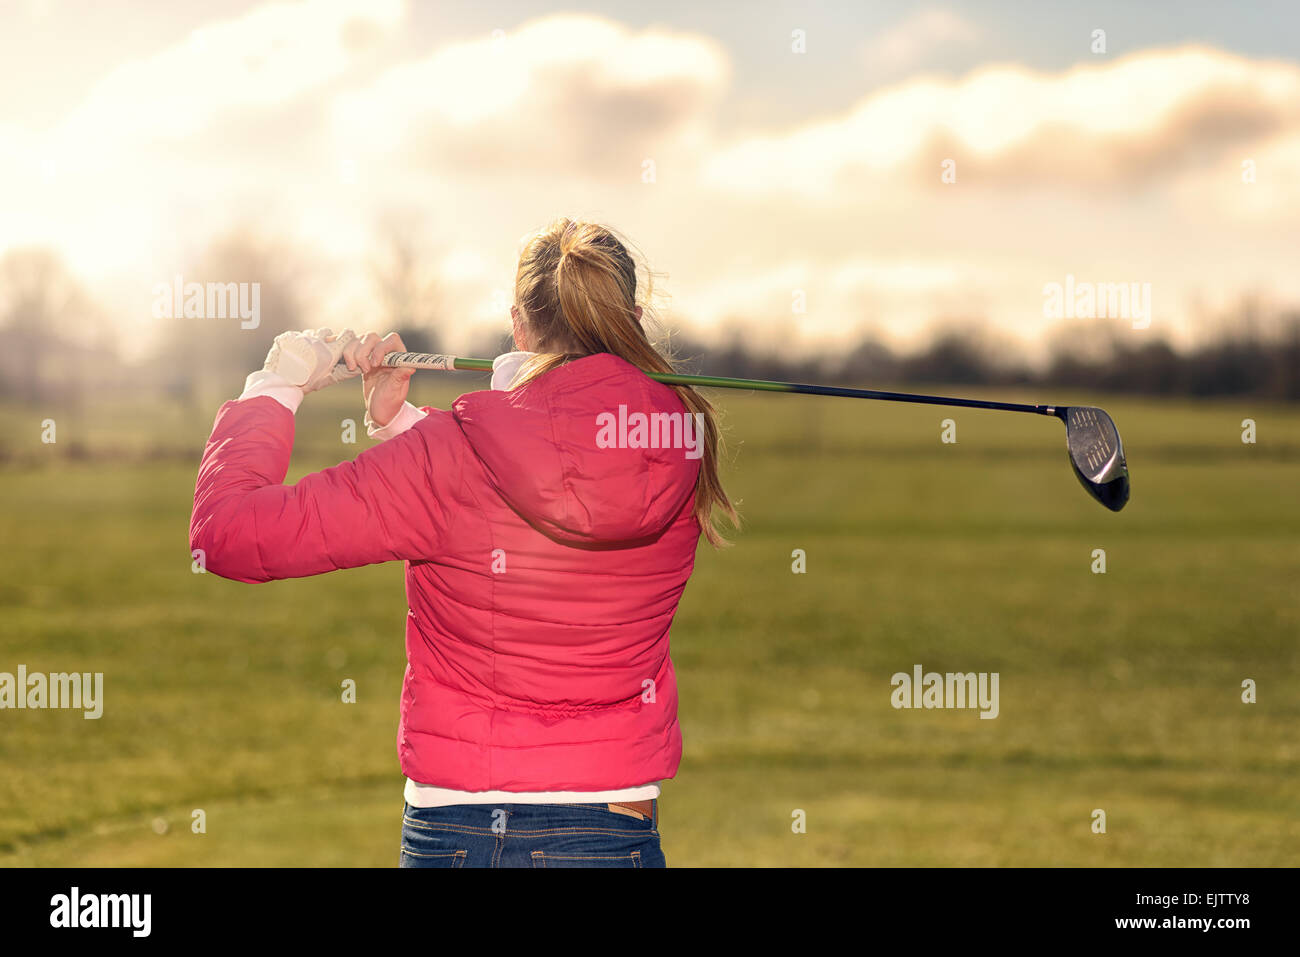 Female golfer watching her drive from the tee  after making a stroke staring down the fairway - Stock Image